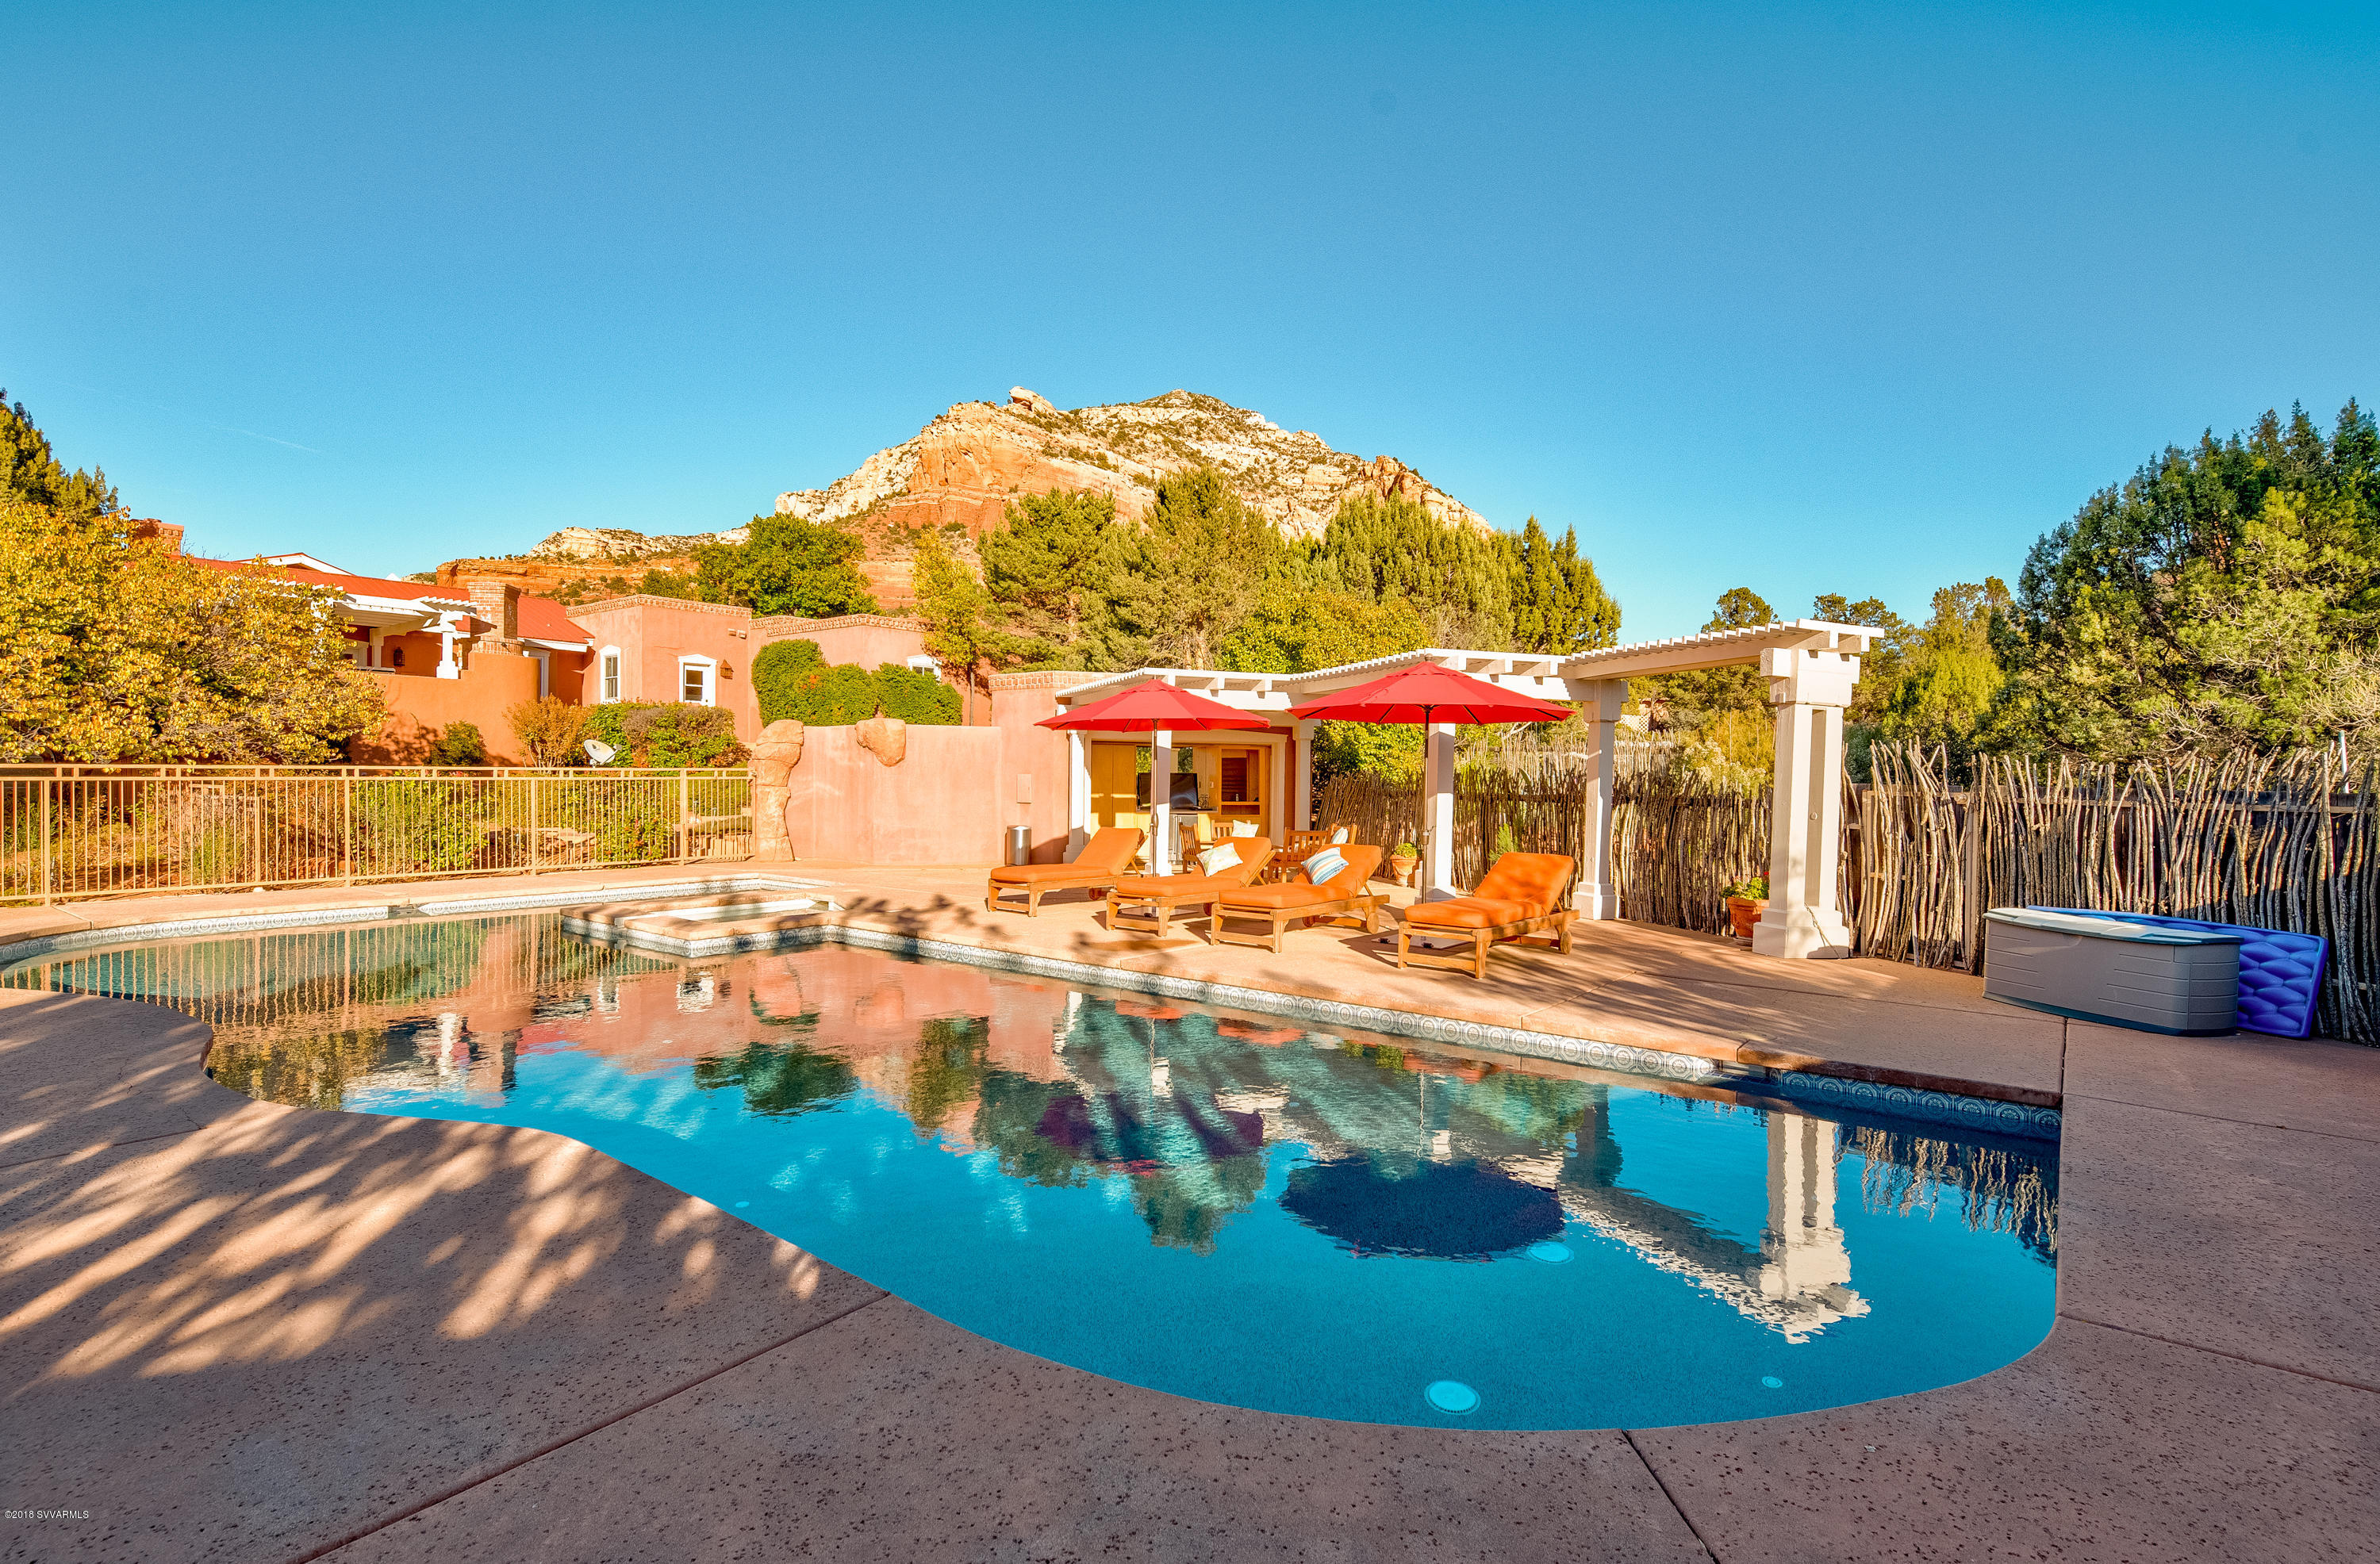 40 Evergreen Lot 1 Drive Sedona, AZ 86336